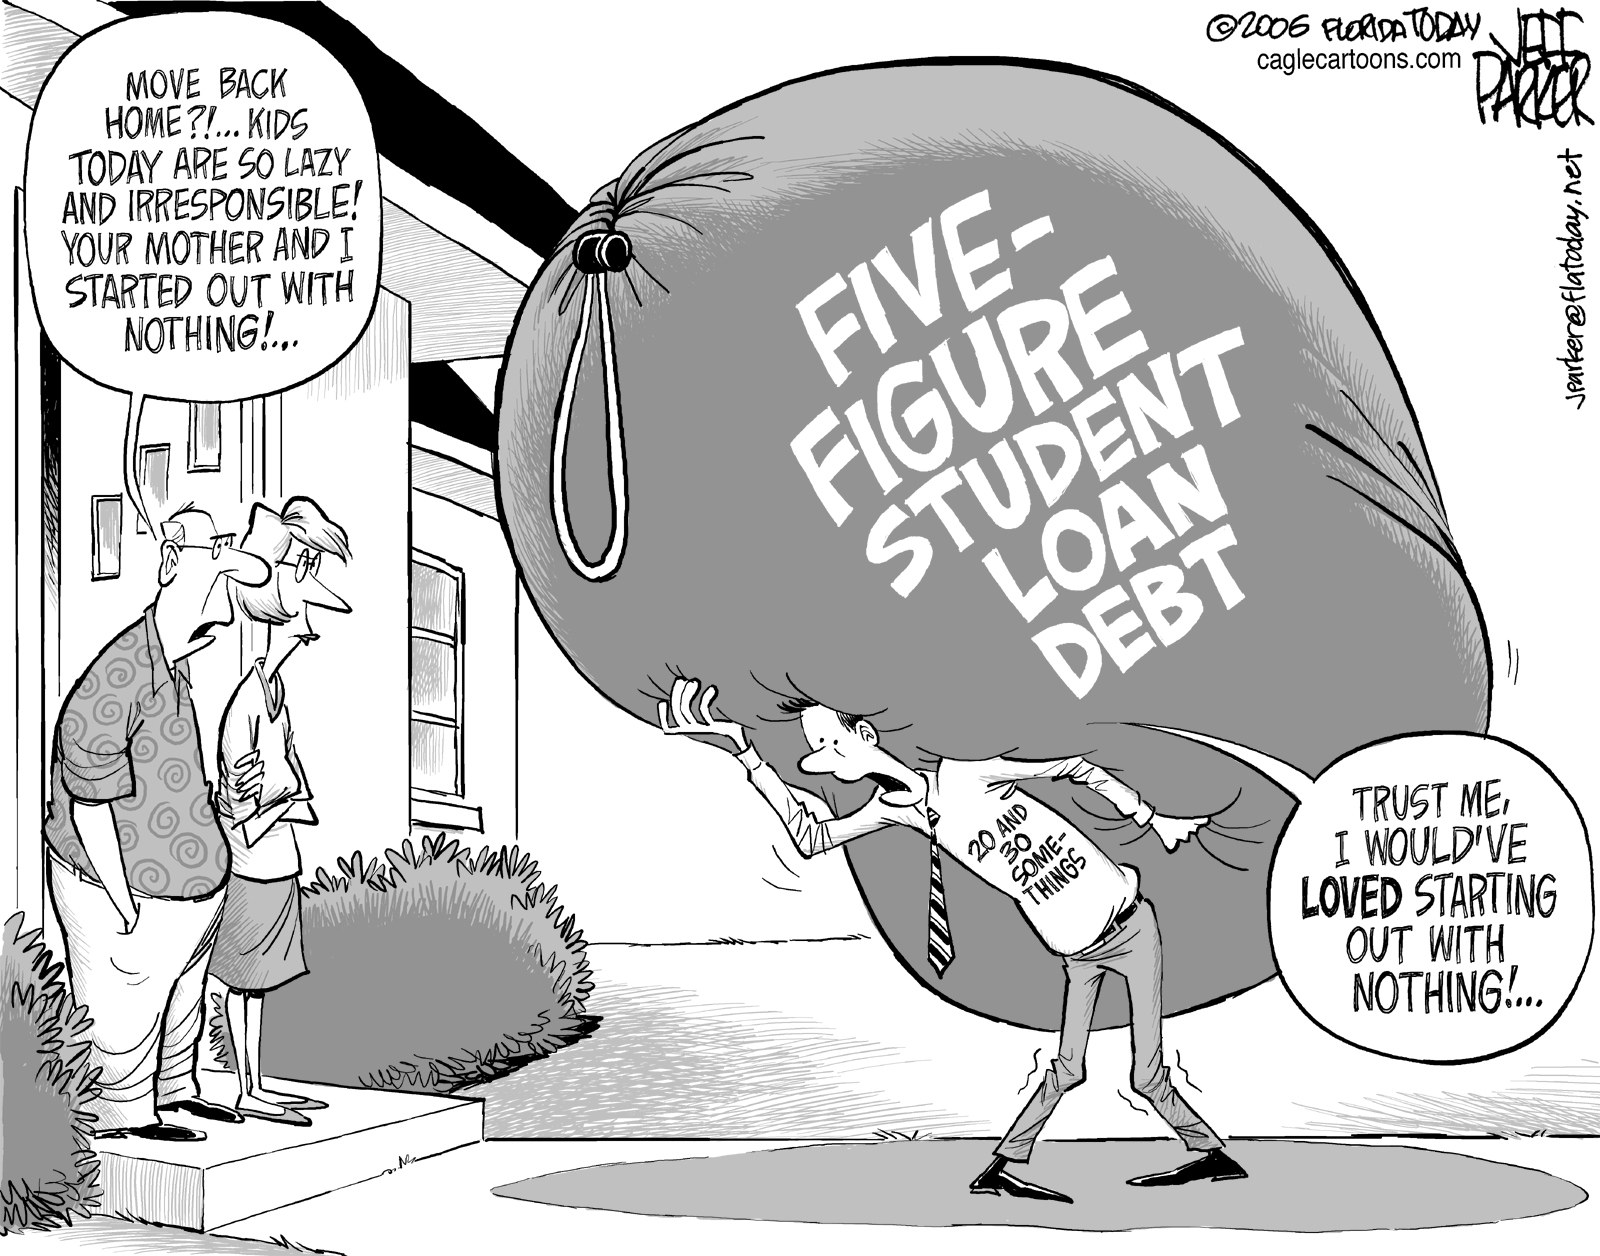 http://studentloancrisis.files.wordpress.com/2010/10/student-debt.jpg